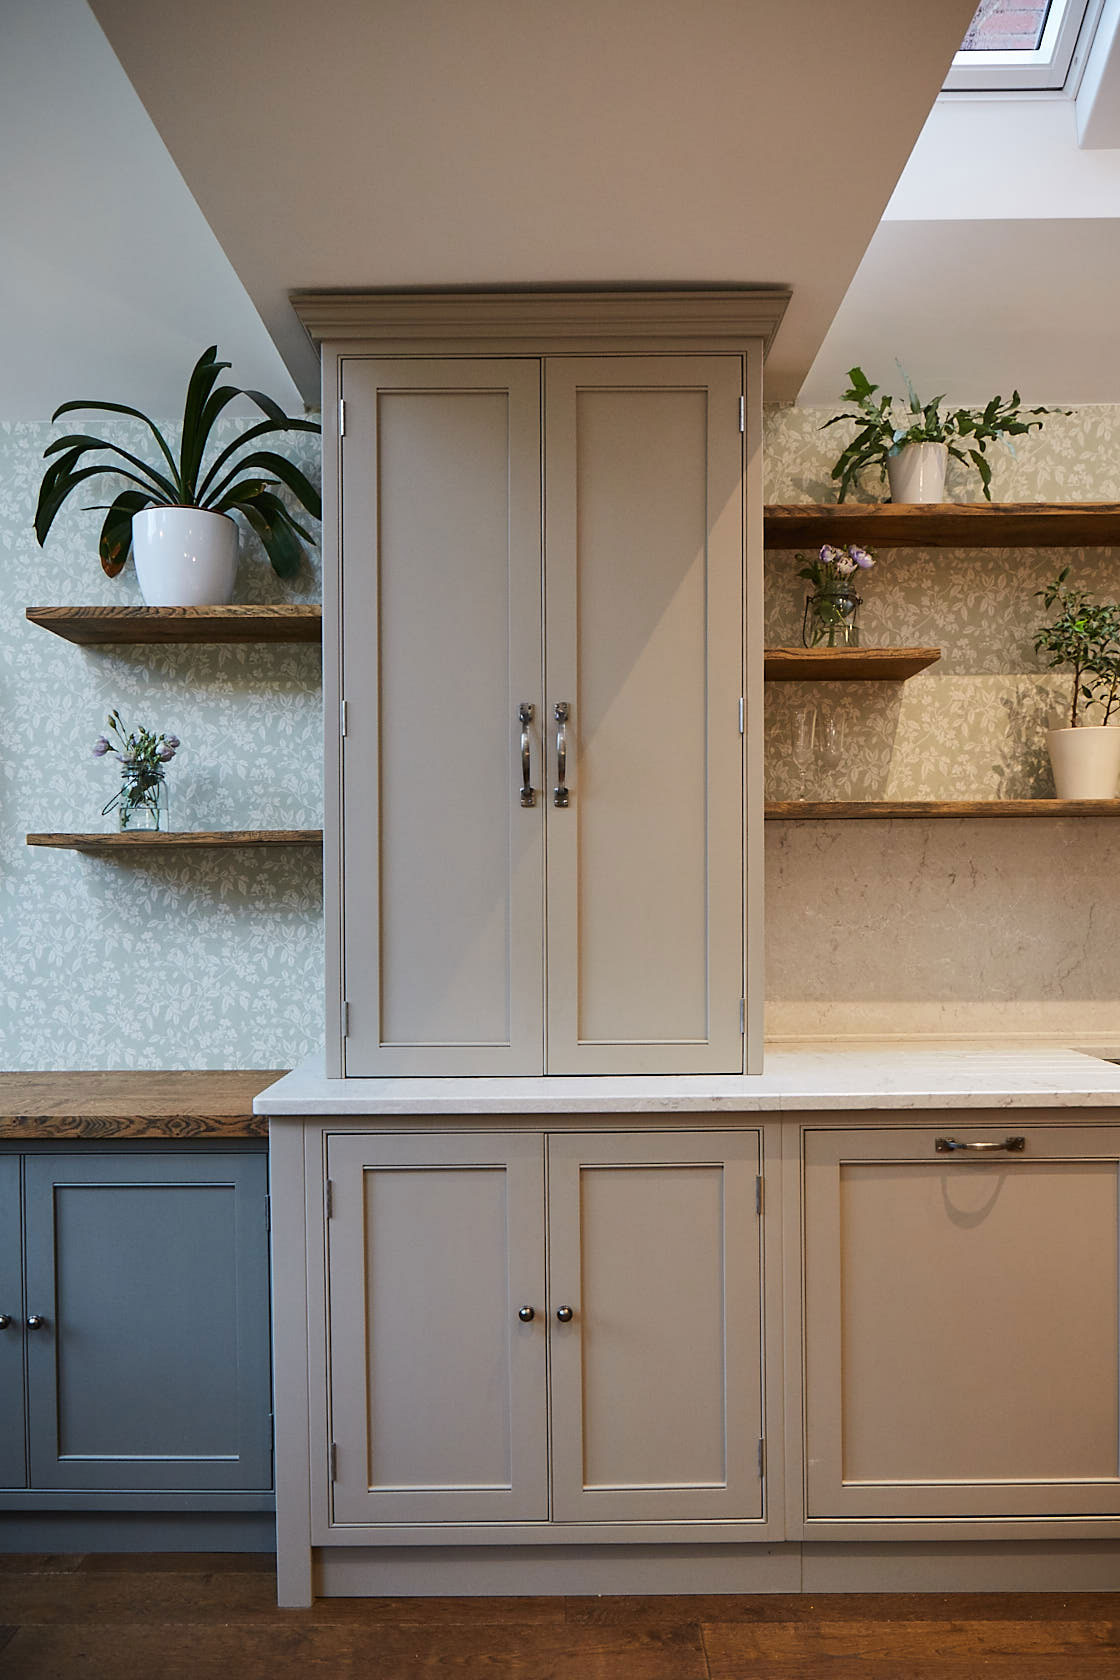 Wall unit sits on white worktop with open wood shelves left and right